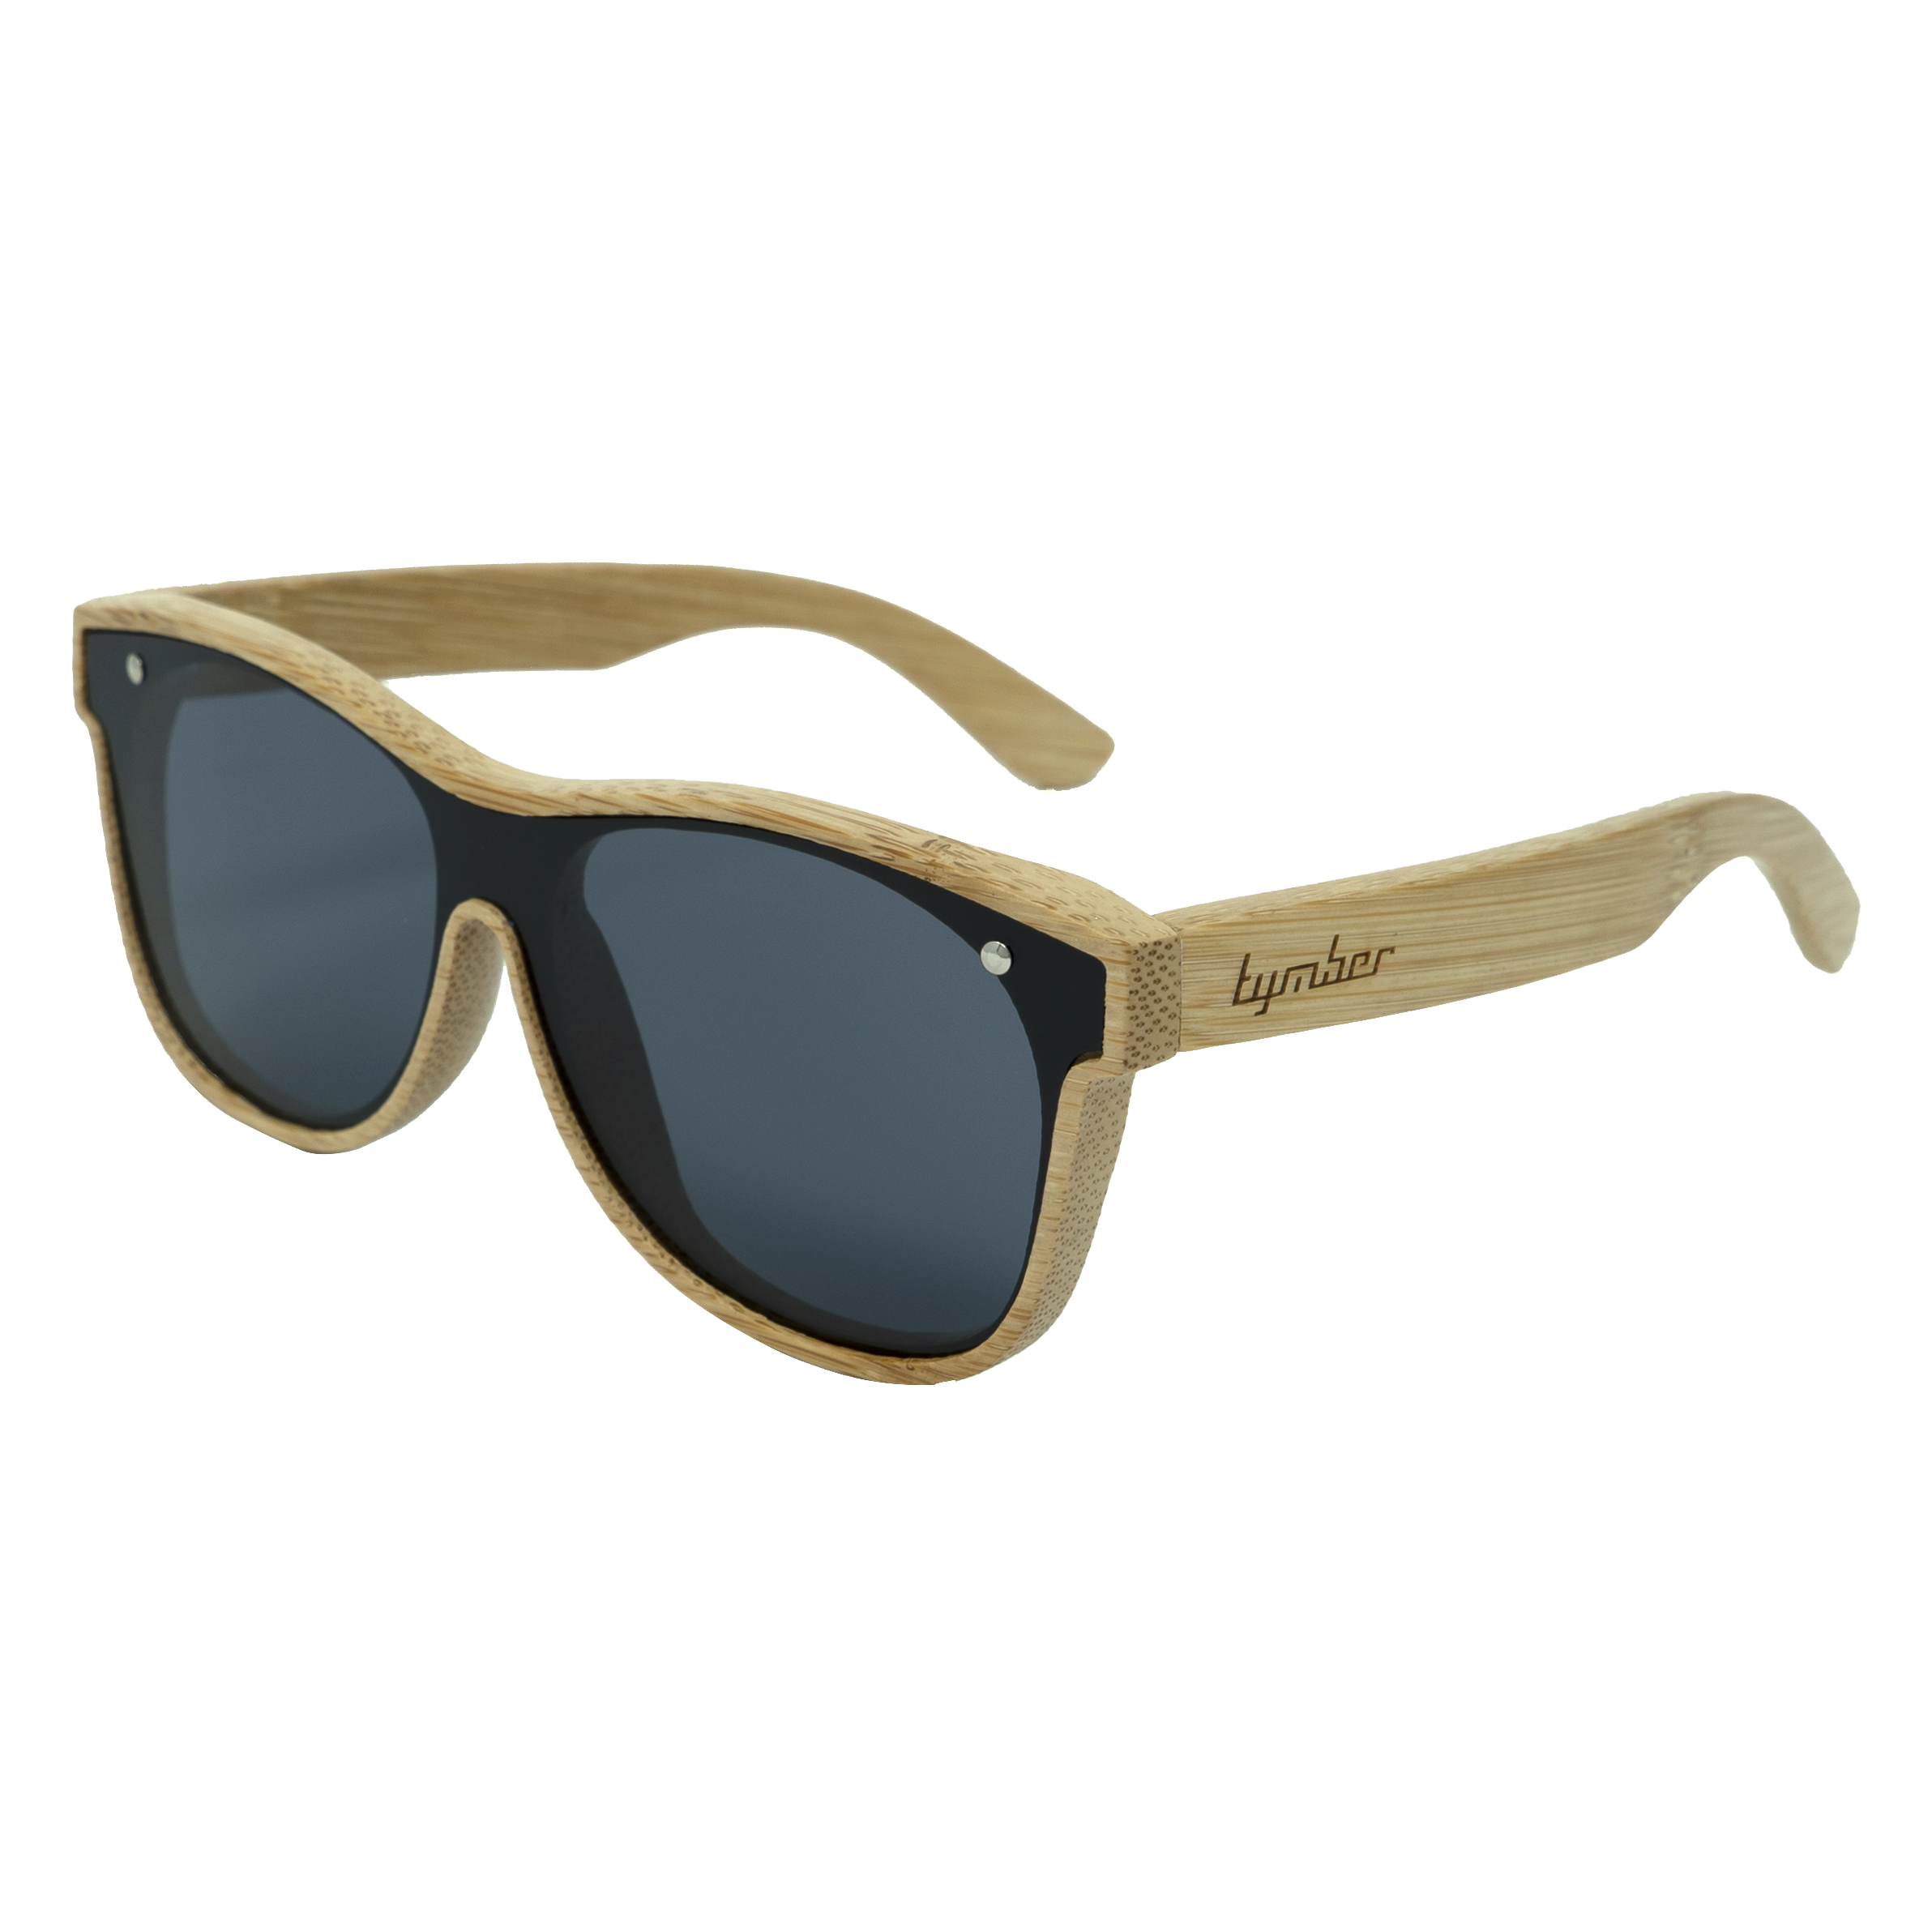 Tymber HYDRA Bamboo Sunglasses with Polarized One-Piece Lens